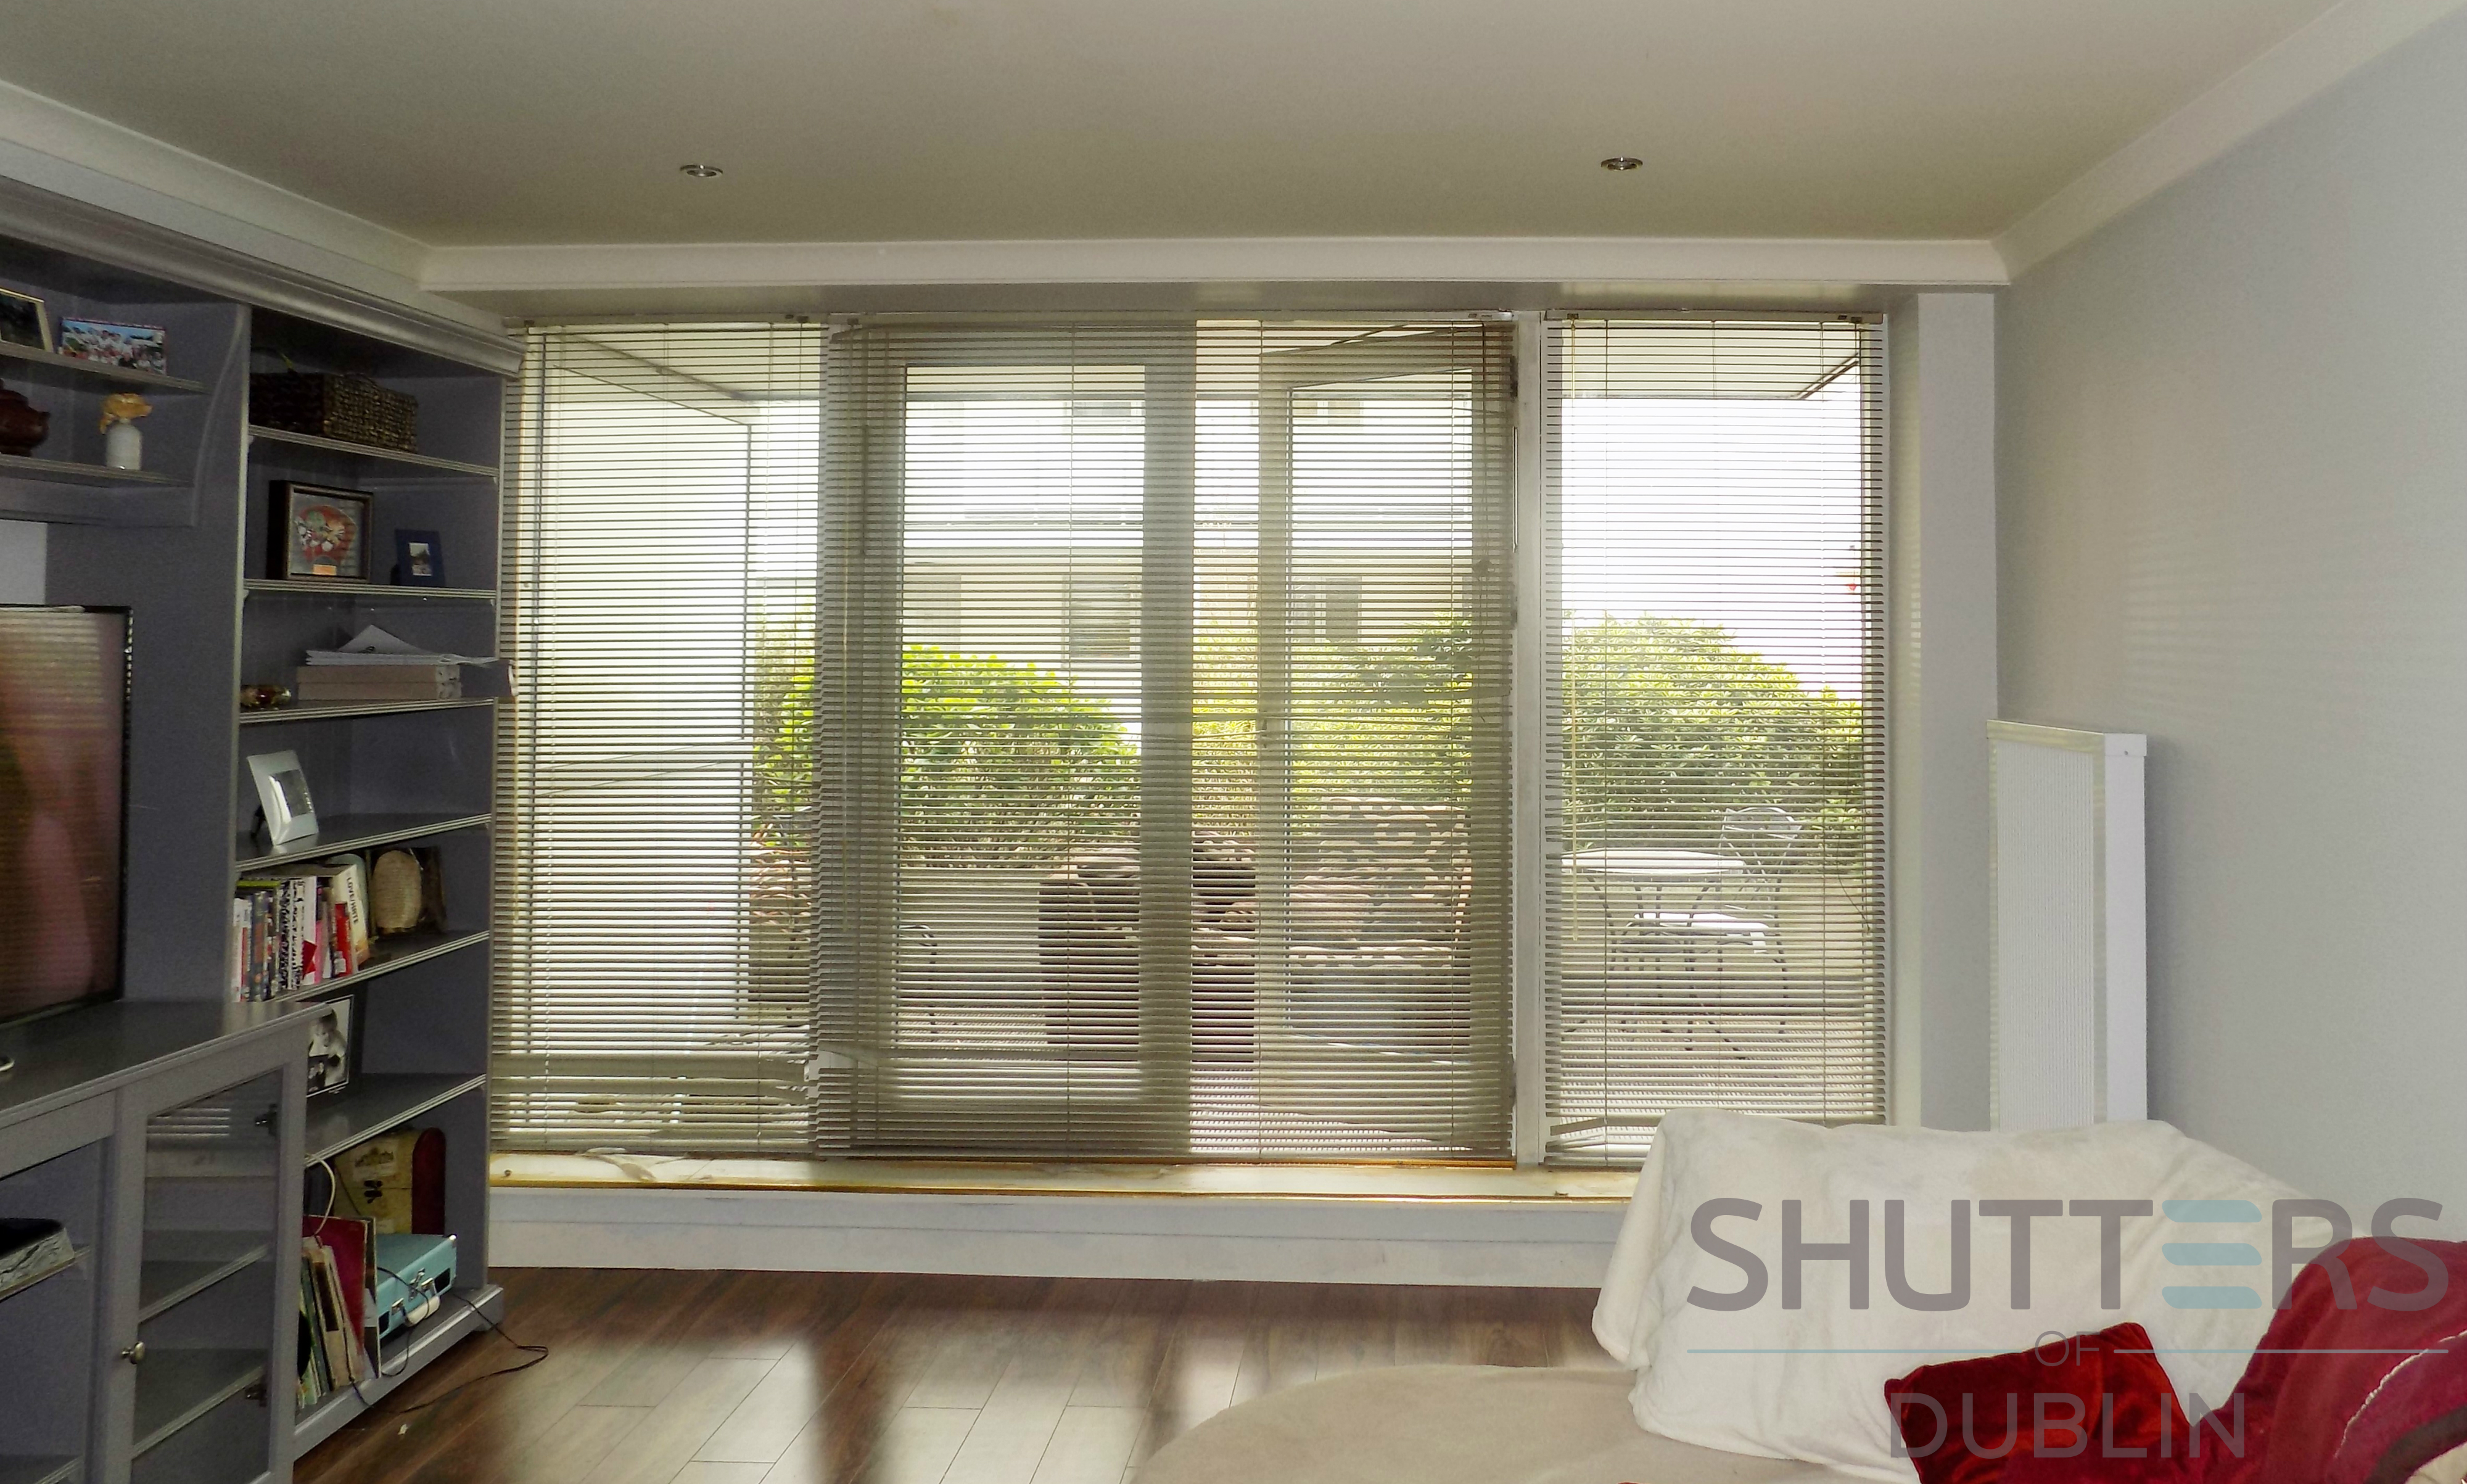 drapery connection shades woven blinds shutters wood natural view image larger